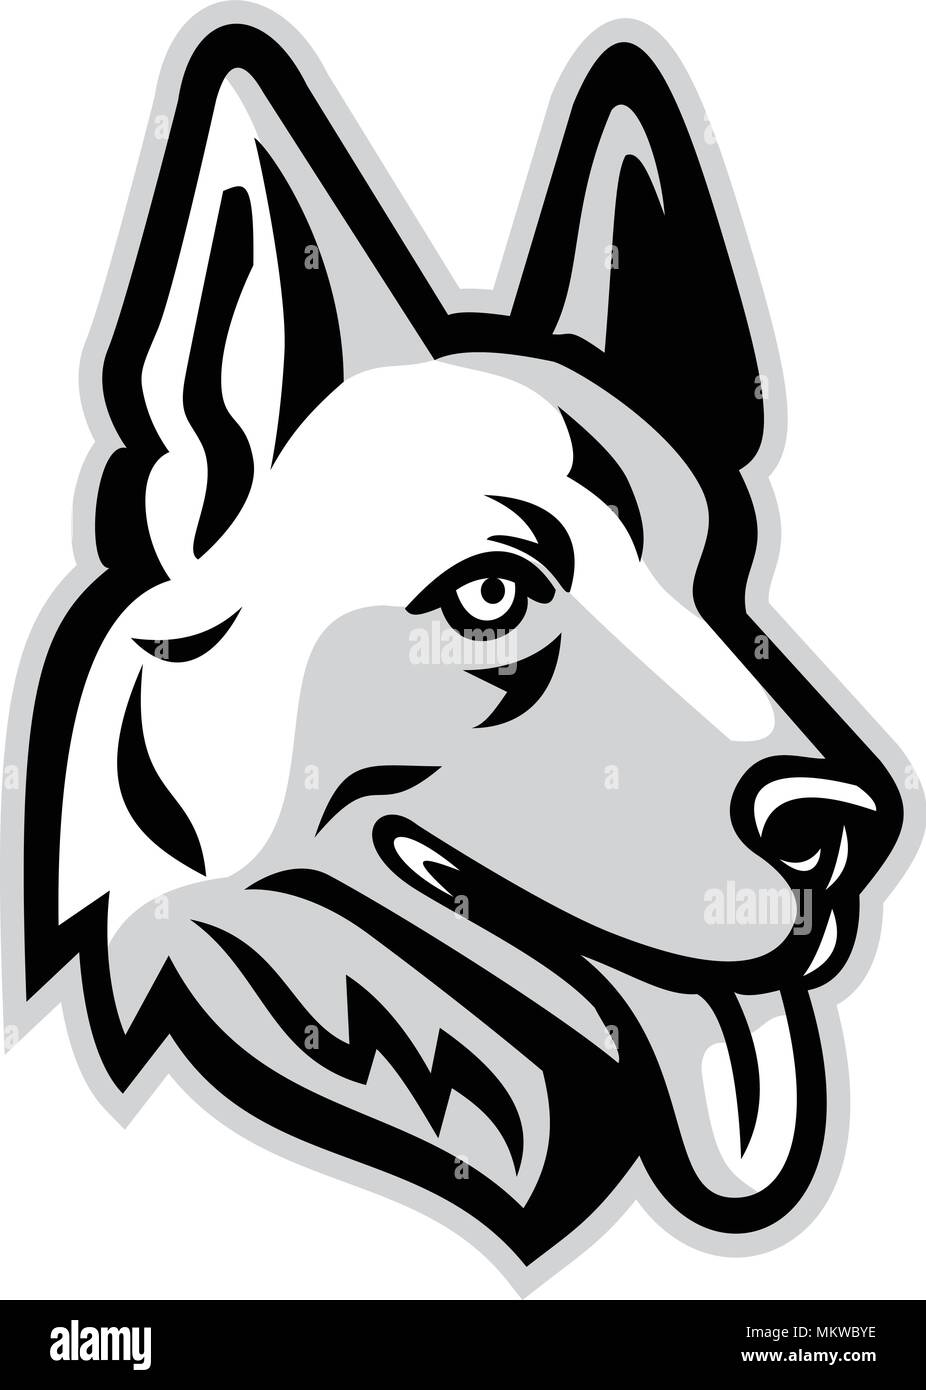 Mascot icon illustration of head of a  German Shepherd or Alsatian wolf dog  viewed from side on isolated background in retro style. - Stock Vector